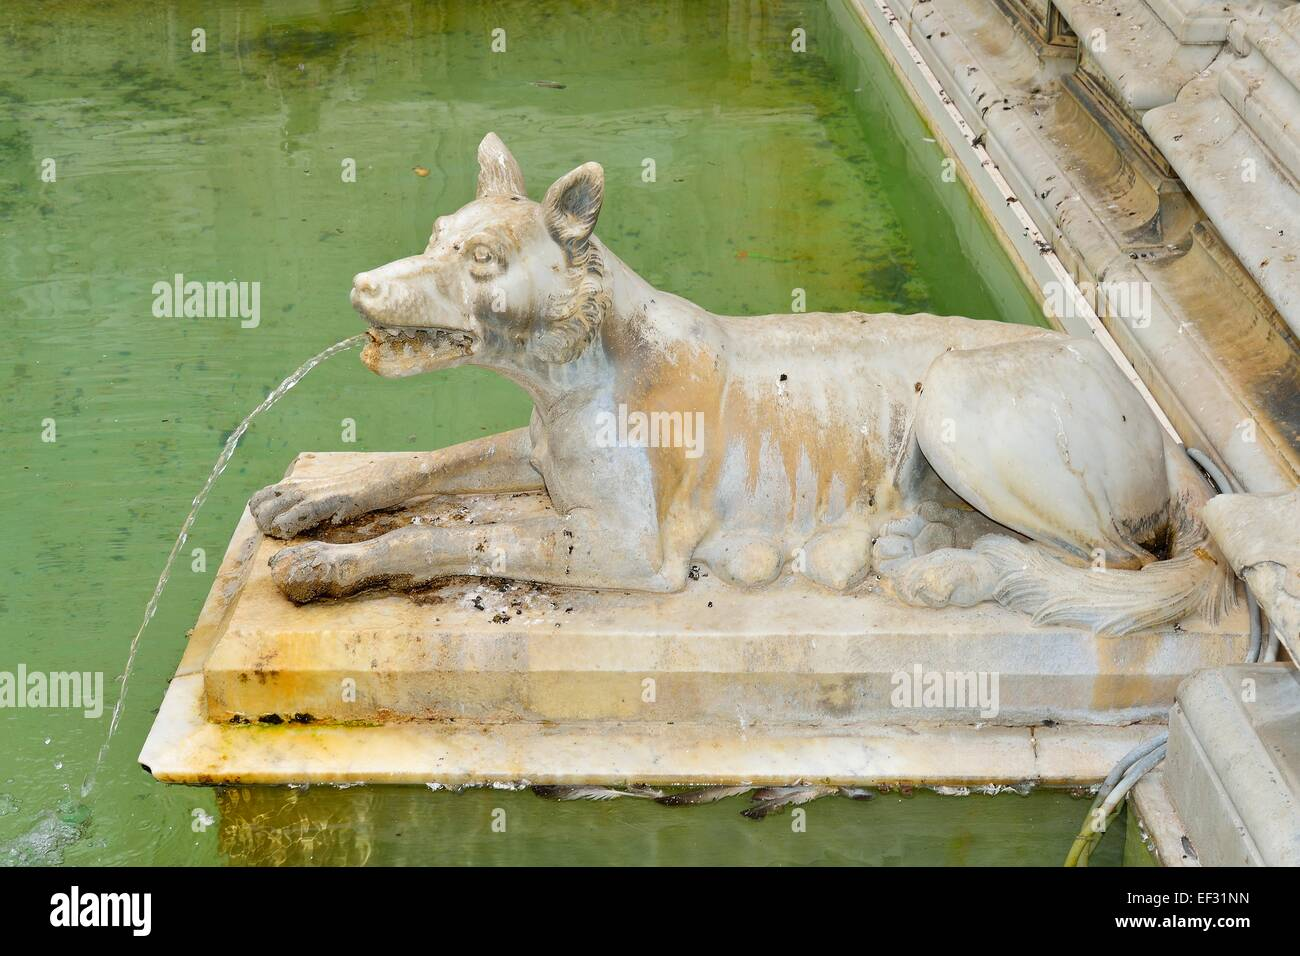 She-wolf spouting water in the Fonte Gaia fountain, Piazza del Campo, Siena, Province of Siena, Tuscany, Italy - Stock Image